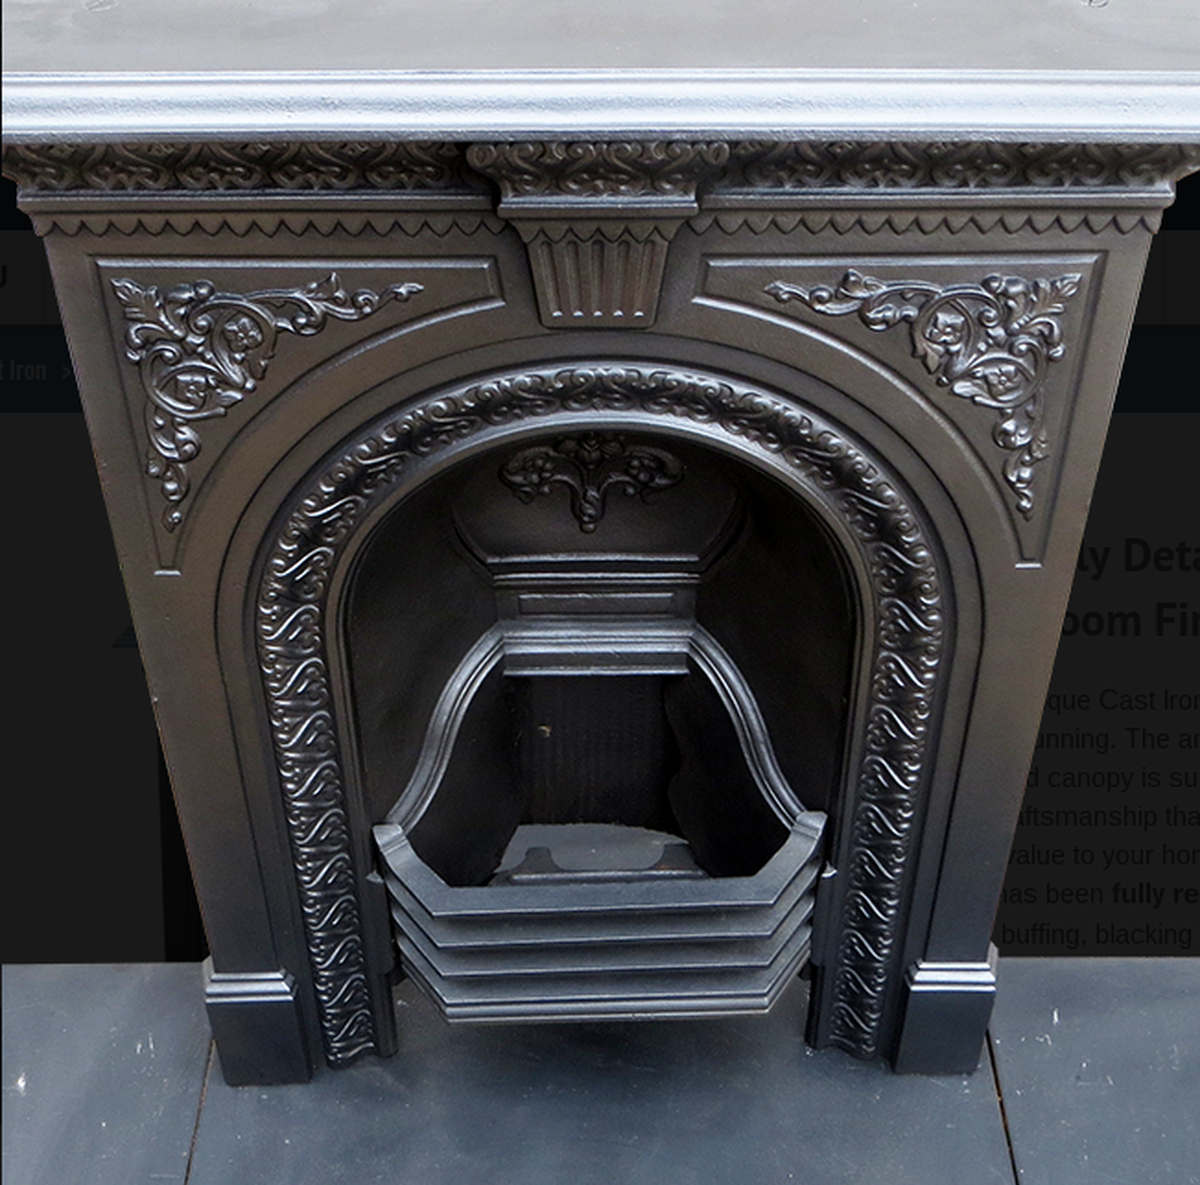 Antique Vintage Bedroom Fireplace: Secondhand Vintage And Reclaimed